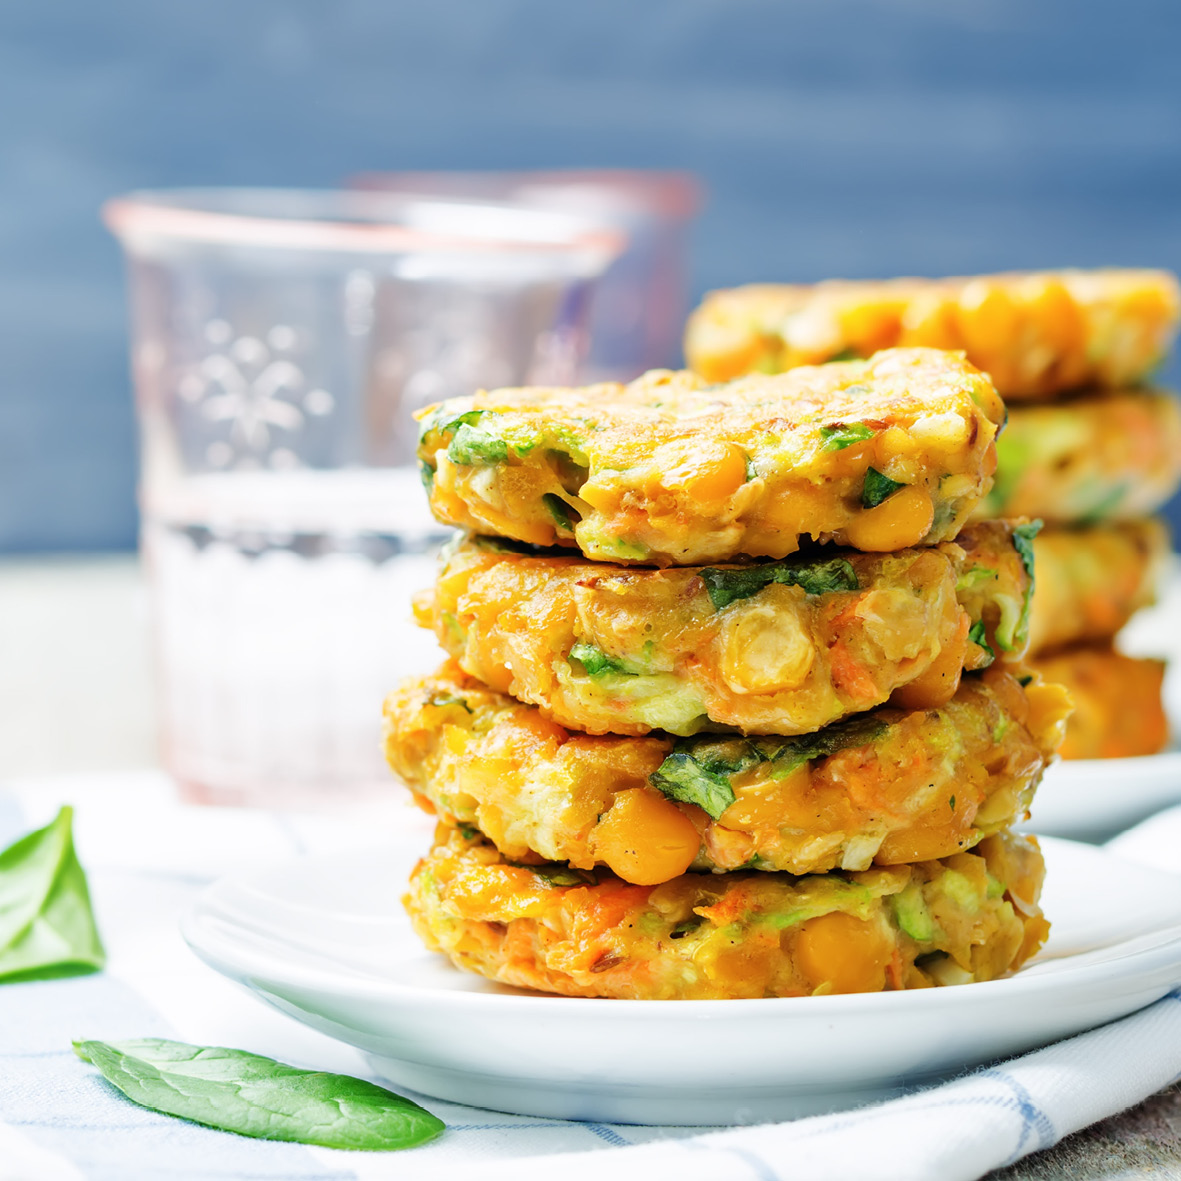 corn_and_zucchini_fritters_with_chilli_guacamole.jpg